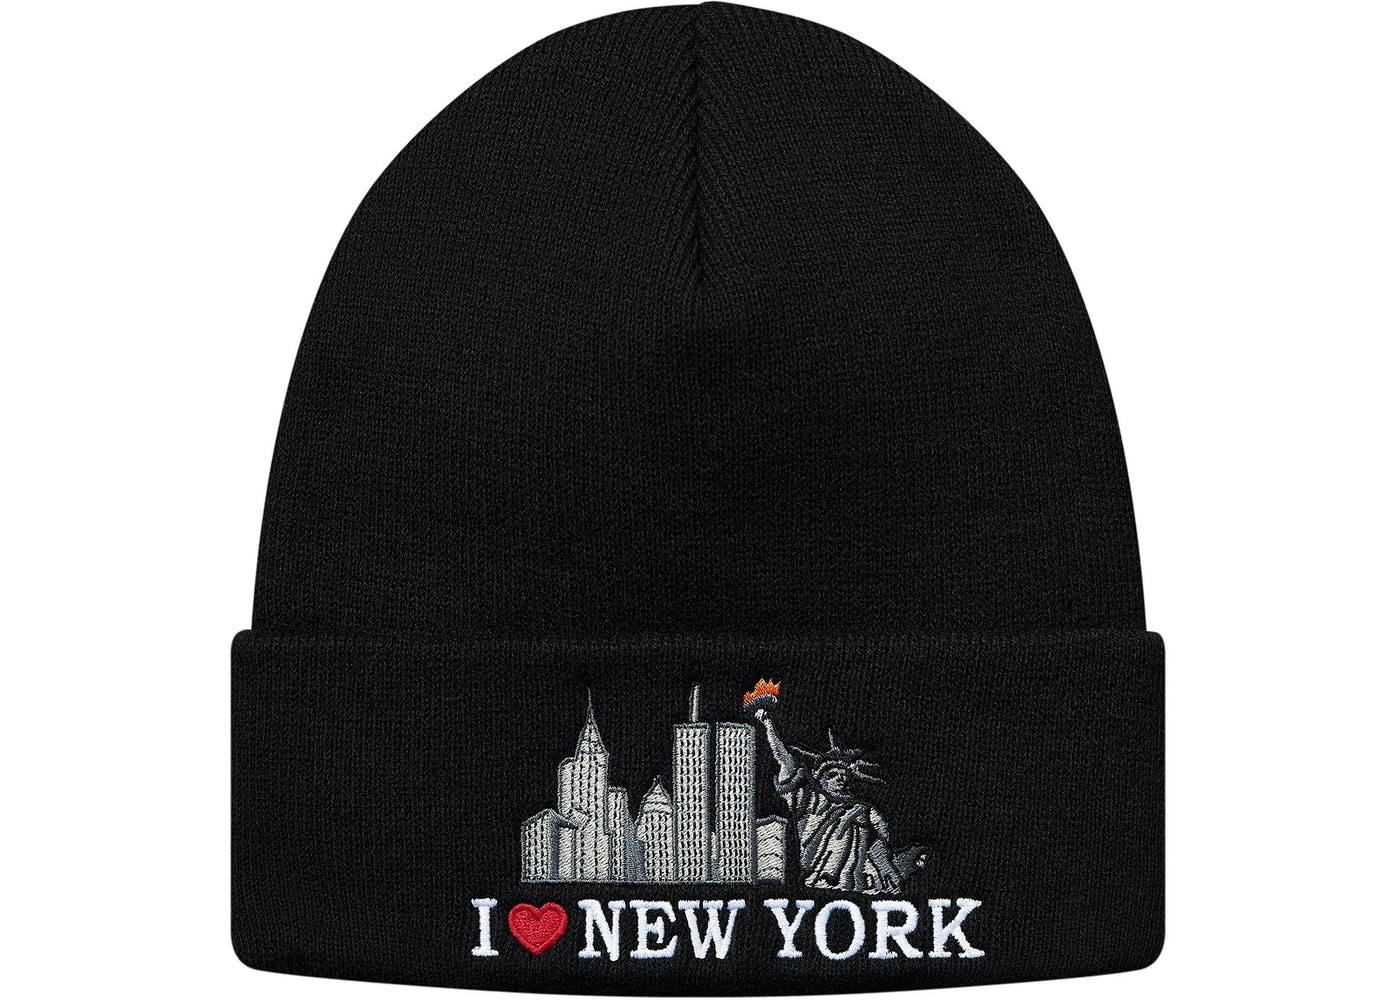 575aff40facd0 Sell. or Ask. View All Bids. Supreme I Love NY Beanie Black